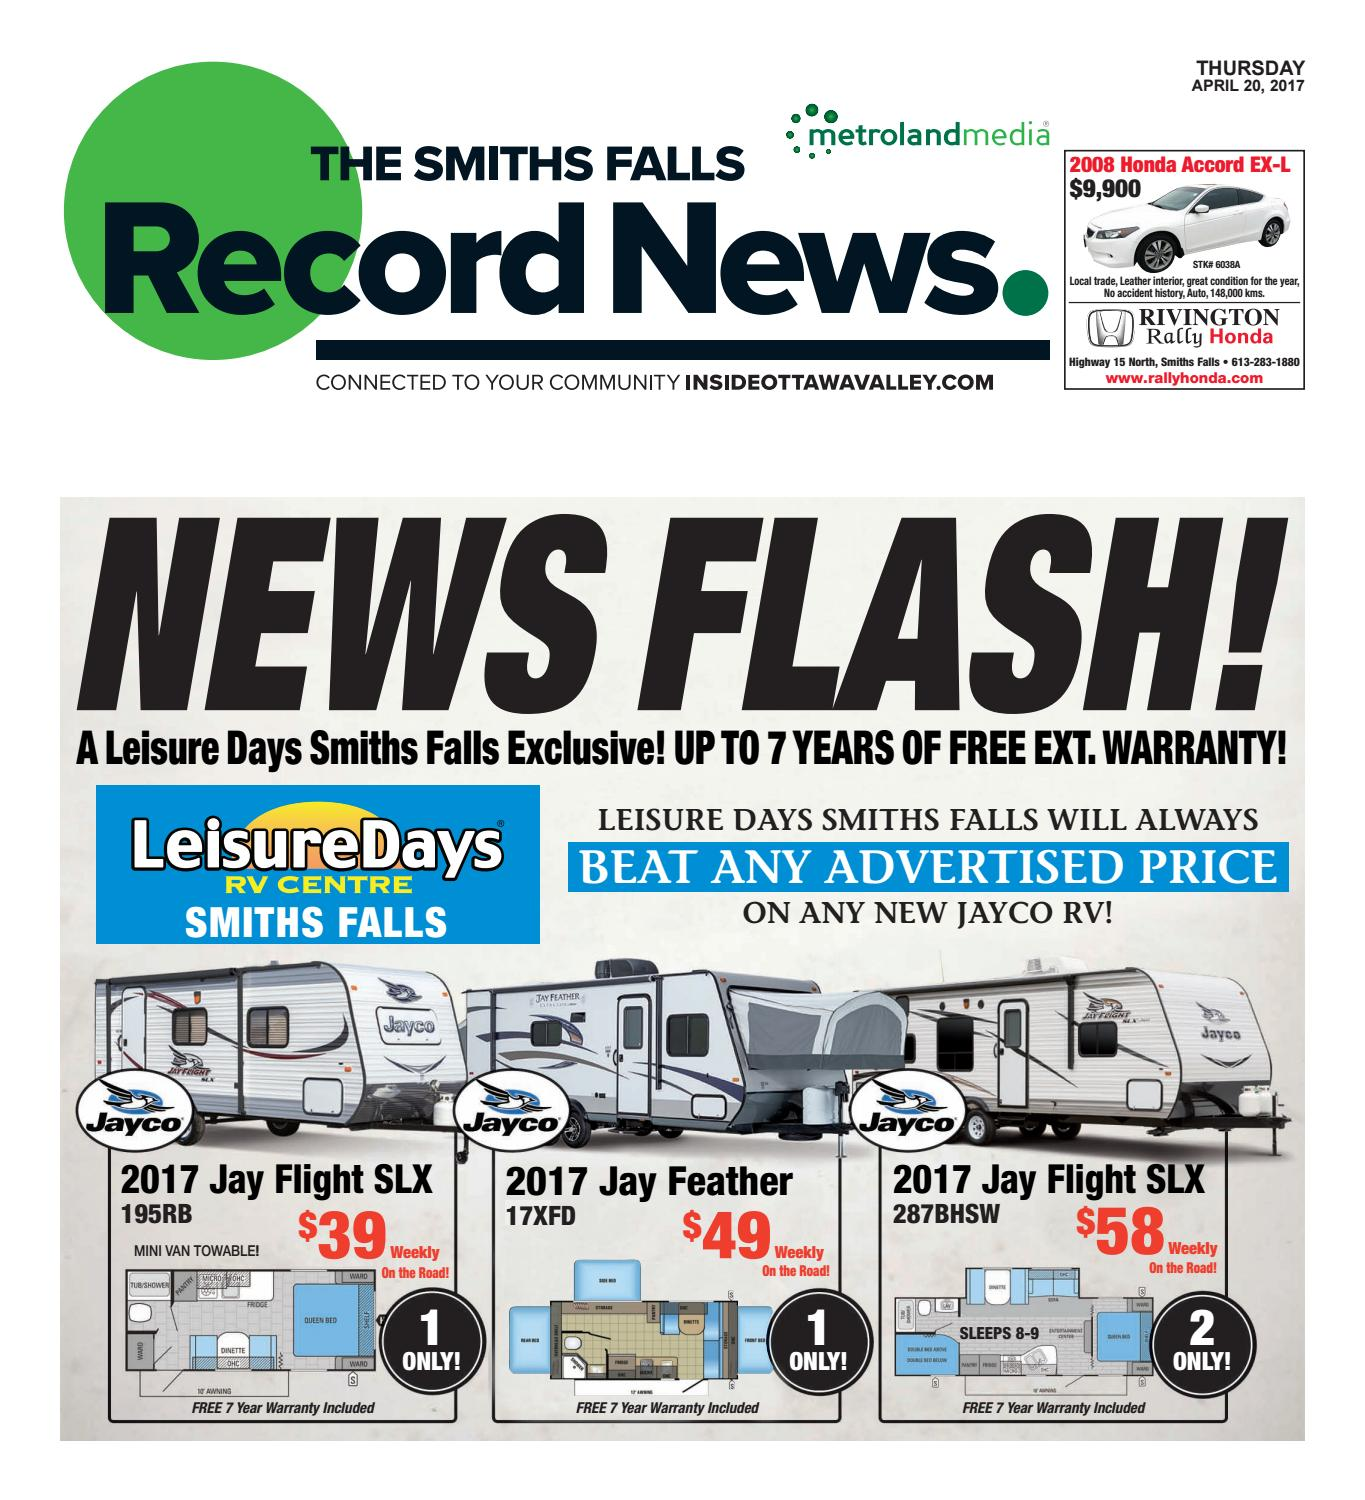 Smithsfalls042017 by metroland east smiths falls record news issuu fandeluxe Gallery